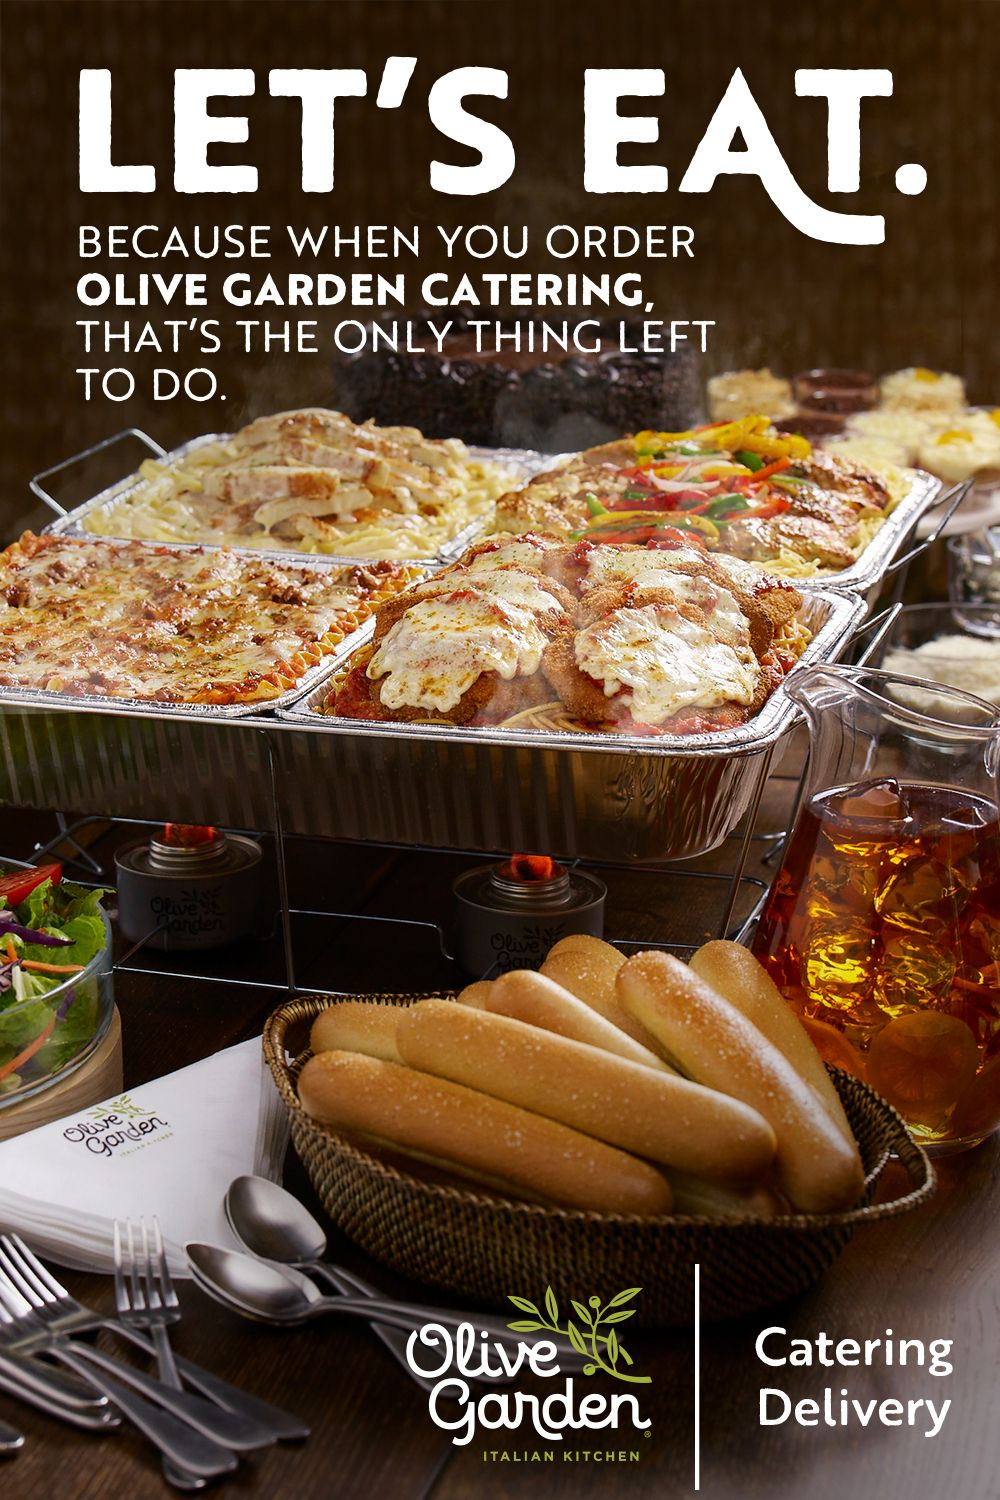 With Olive Garden catering, holiday planning (and enjoying